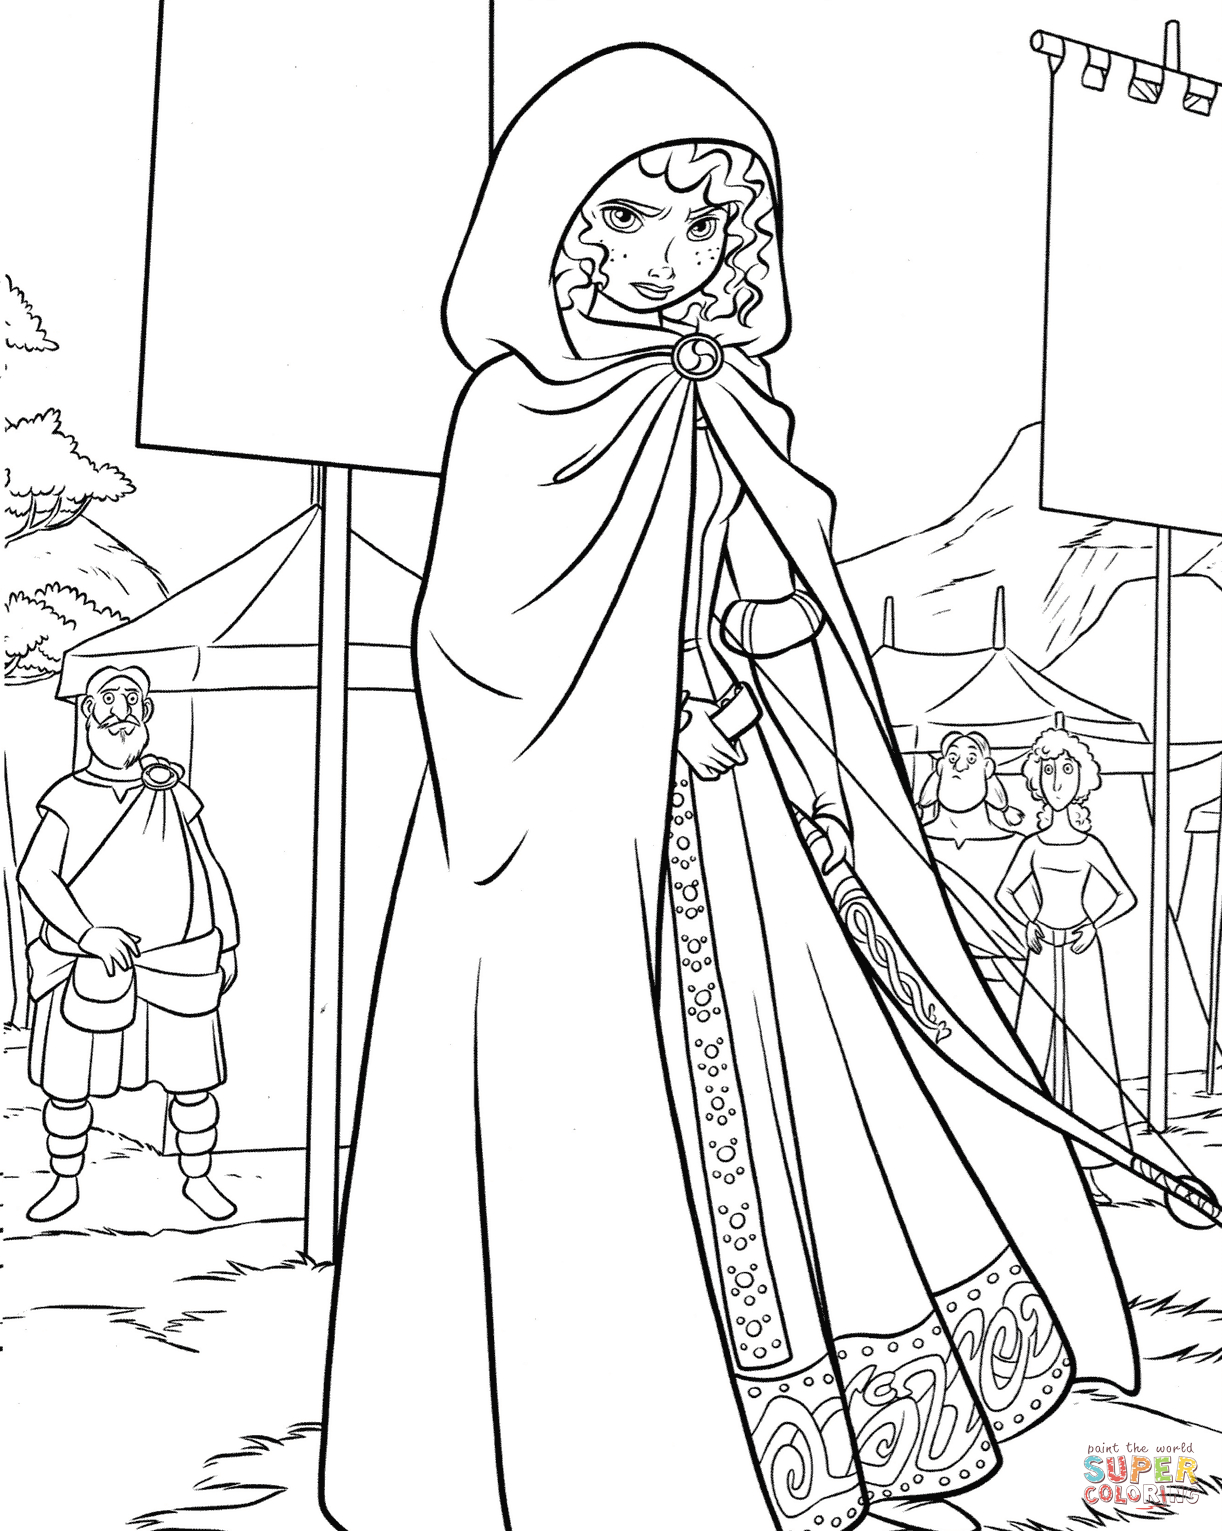 Merida Coloring Pages Princess Merida On A Highland Games Coloring Page Free Printable